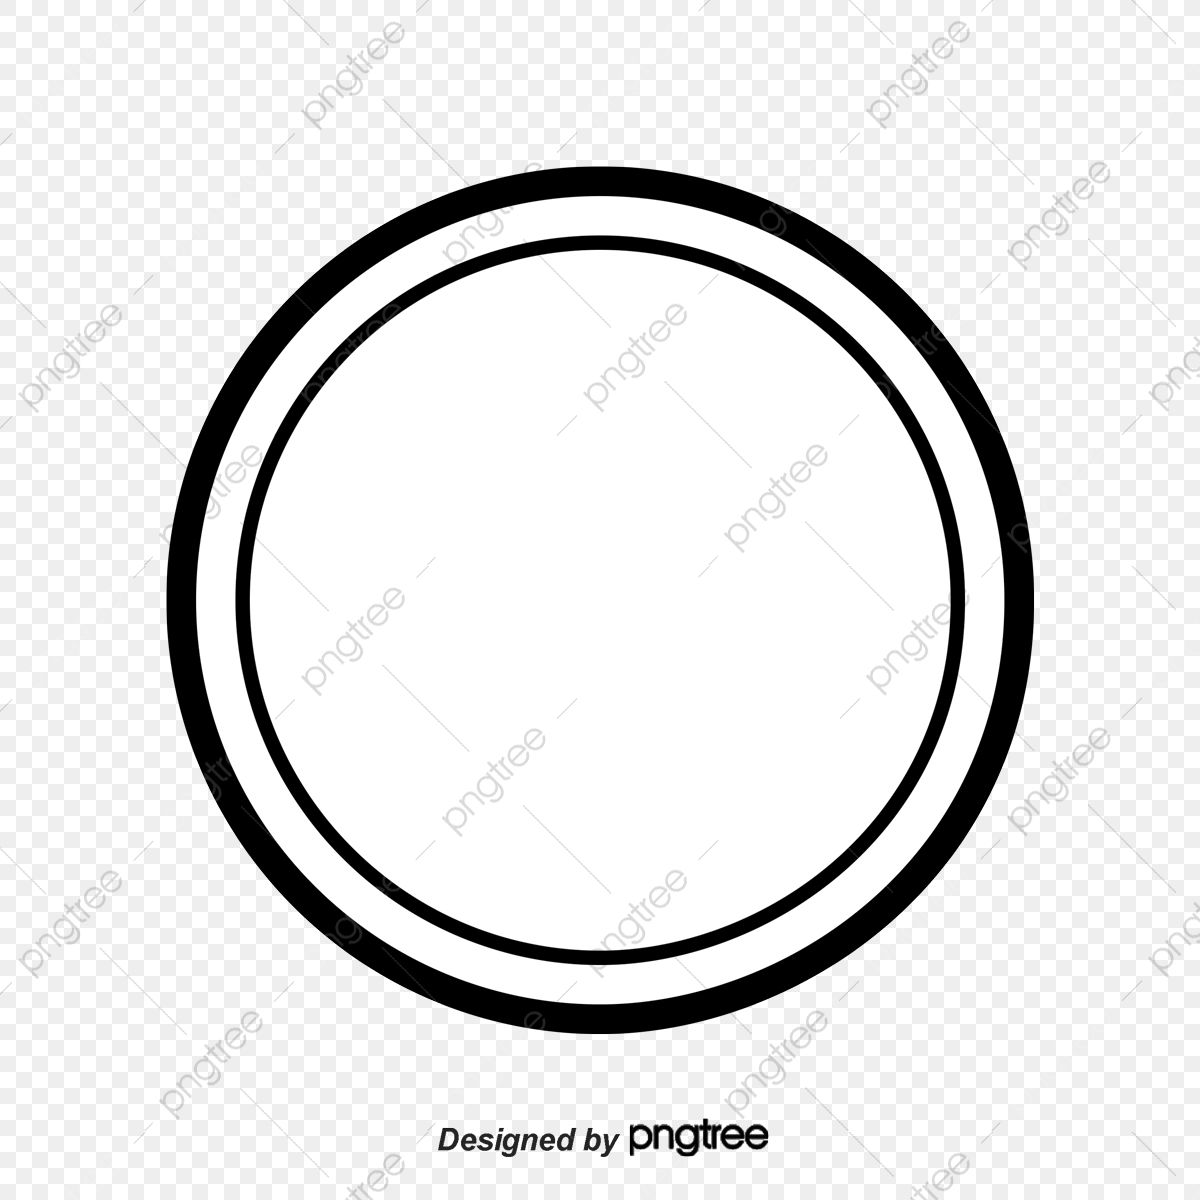 Black Circle Round Material Circle Pretty Circle Png Transparent Clipart Image And Psd File For Free Download Circle Exams Funny Clip Art